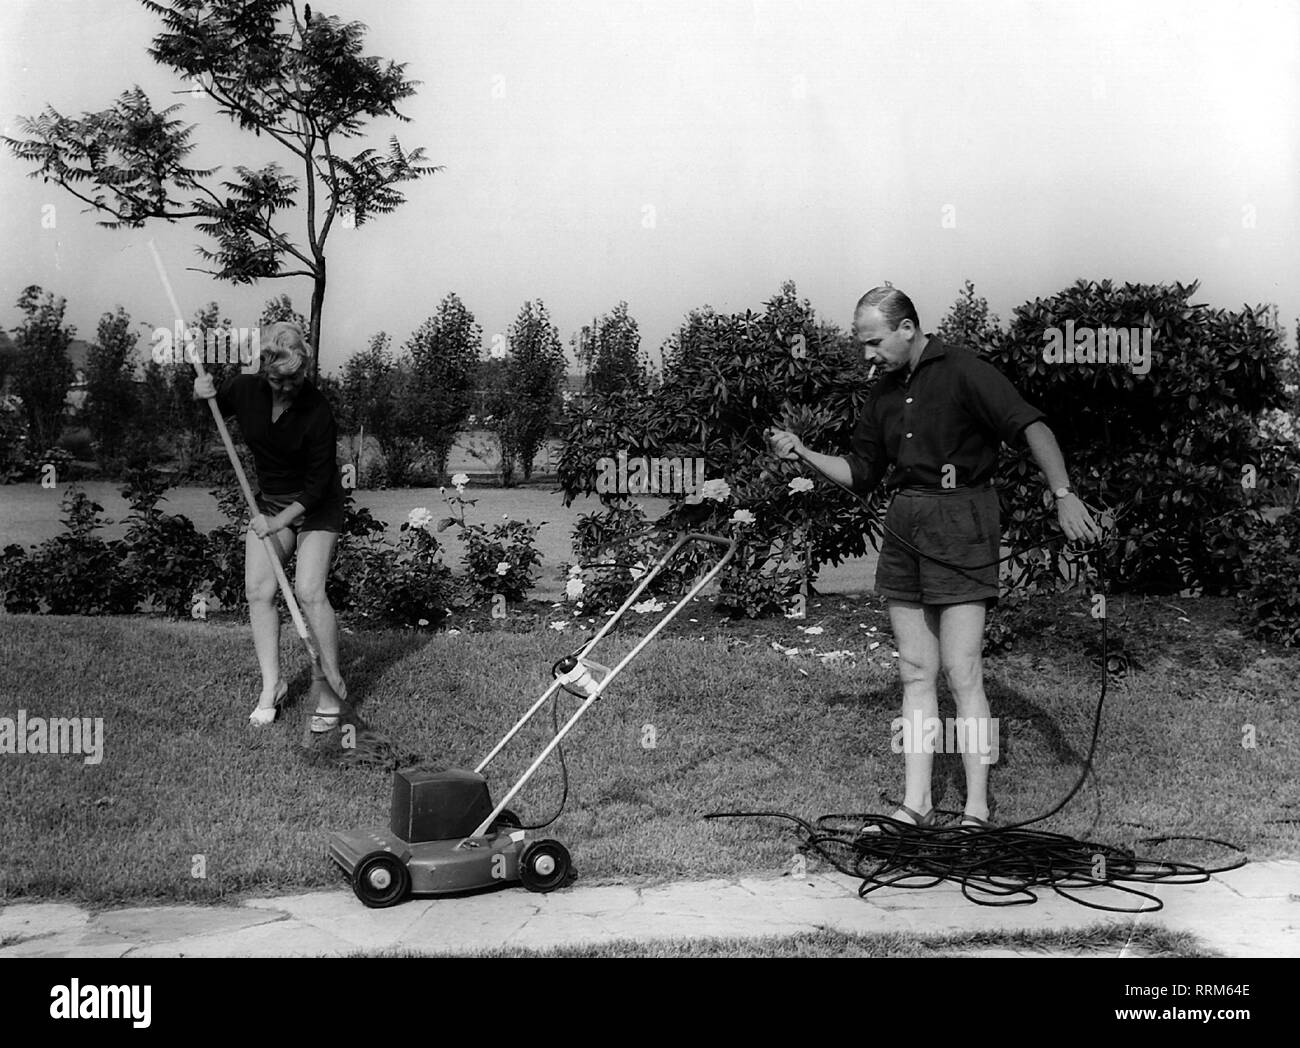 Meysel, Inge, 30.5.1910 - 10.7.2004, German actress, full length, with her husband, John Olden, gardening, circa 1964, Additional-Rights-Clearance-Info-Not-Available - Stock Image